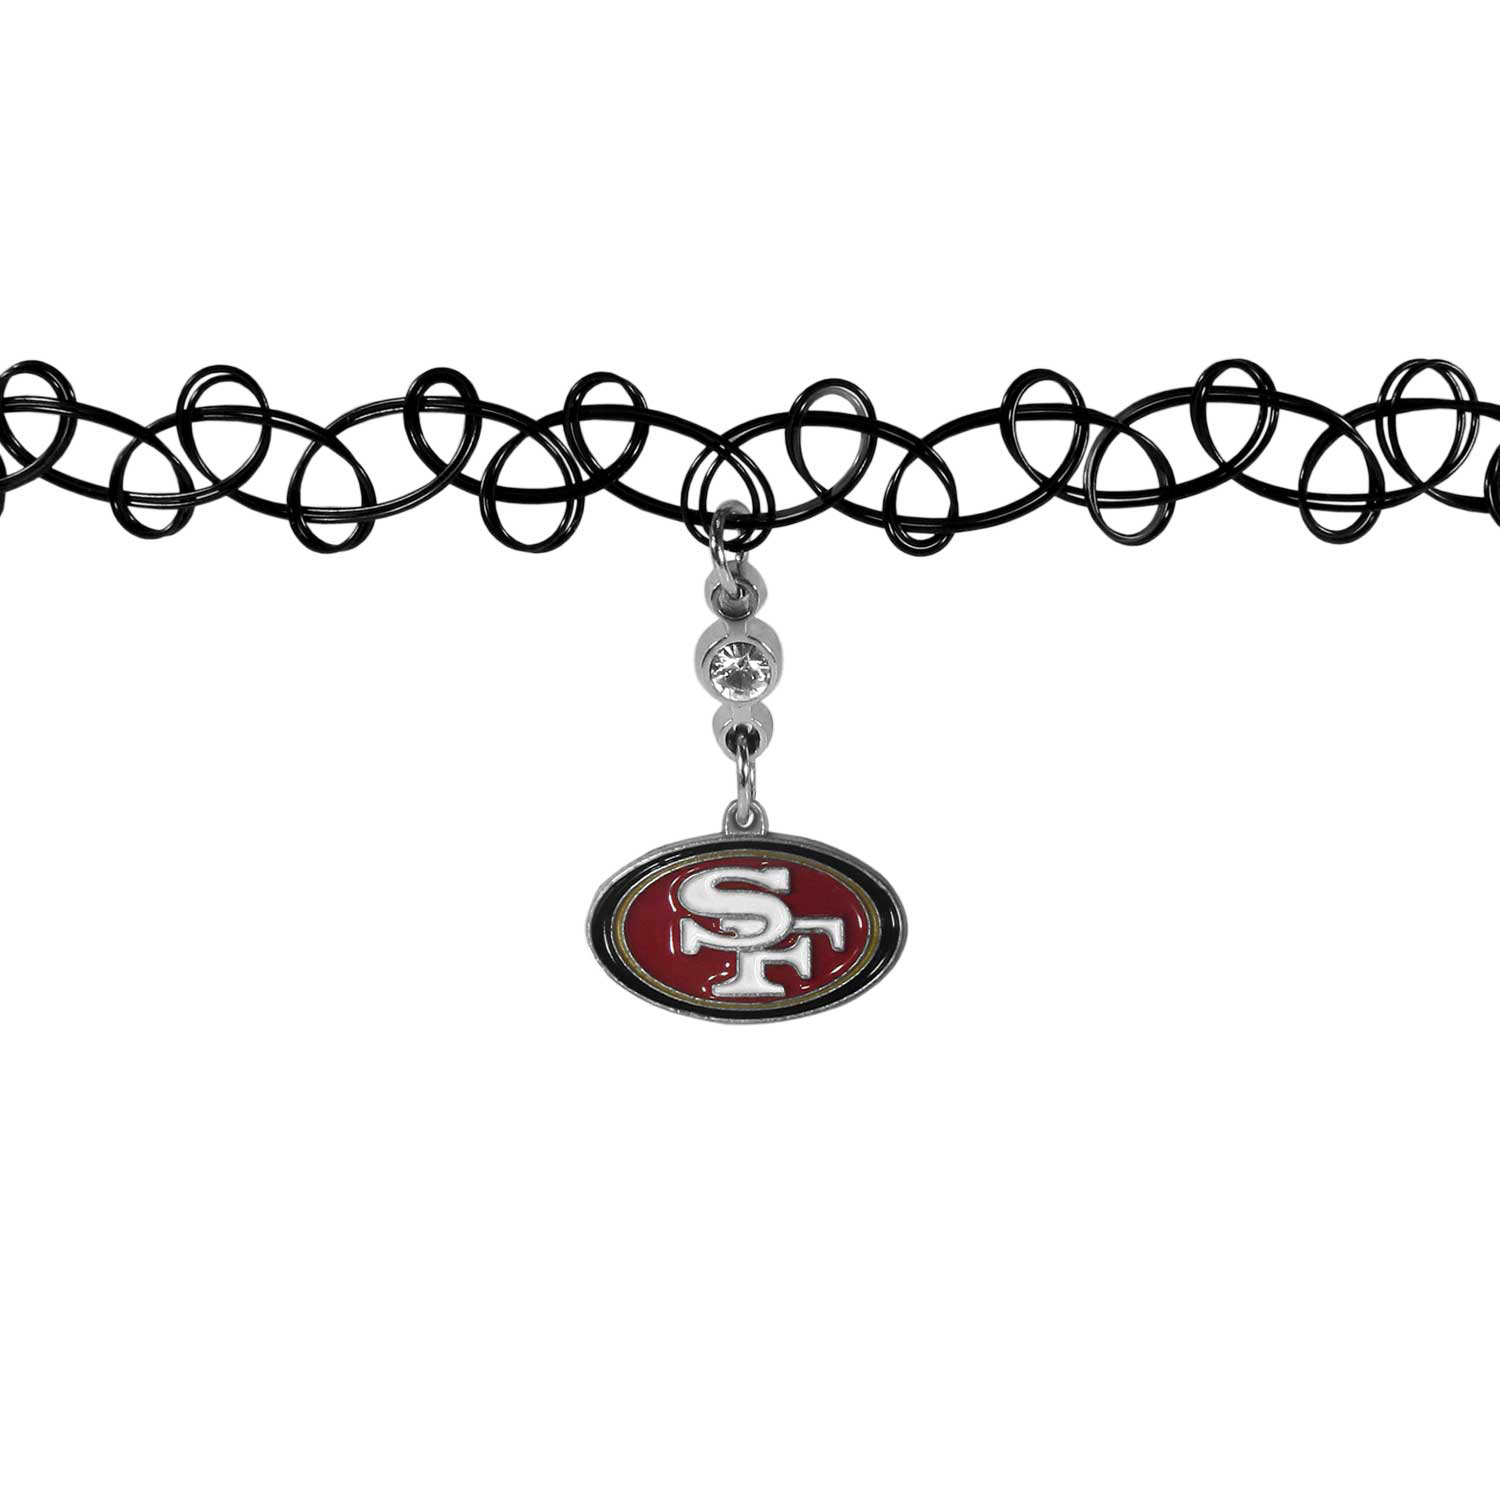 San Francisco 49ers Knotted Choker - This retro, knotted choker is a cool and unique piece of fan jewelry. The tattoo style choker features a high polish San Francisco 49ers charm with rhinestone accents.